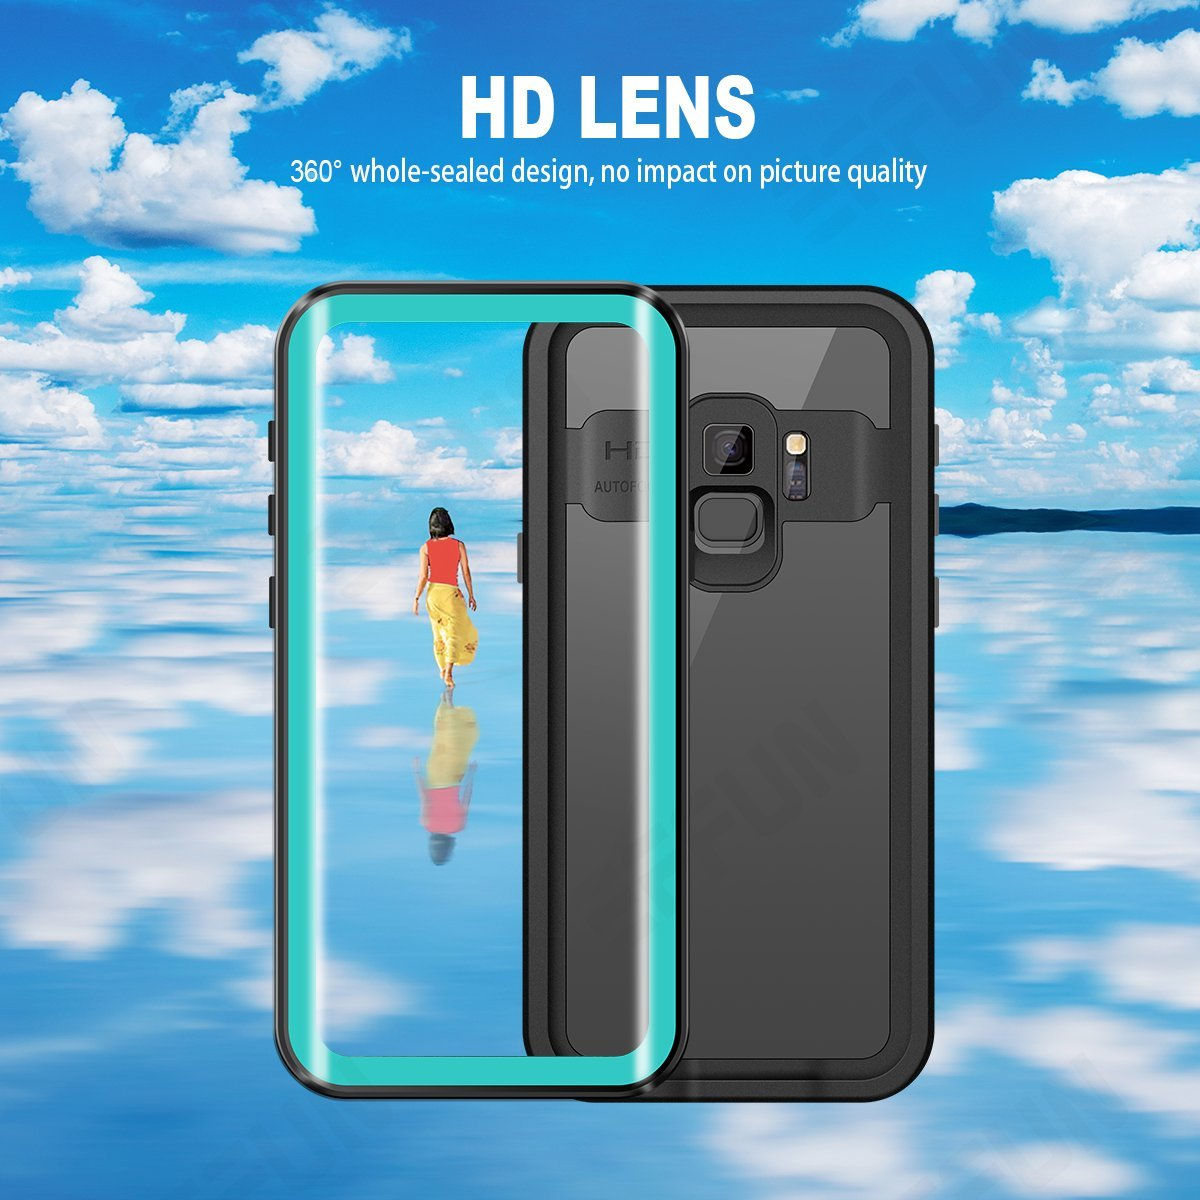 IP68 Certified Waterproof Underwater Cover Dustproof Snowproof Shockproof Case for Galaxy S9 with Phone Stand PH Test Paper and Floating Strap EFFUN Samsung Galaxy S9 Waterproof Case